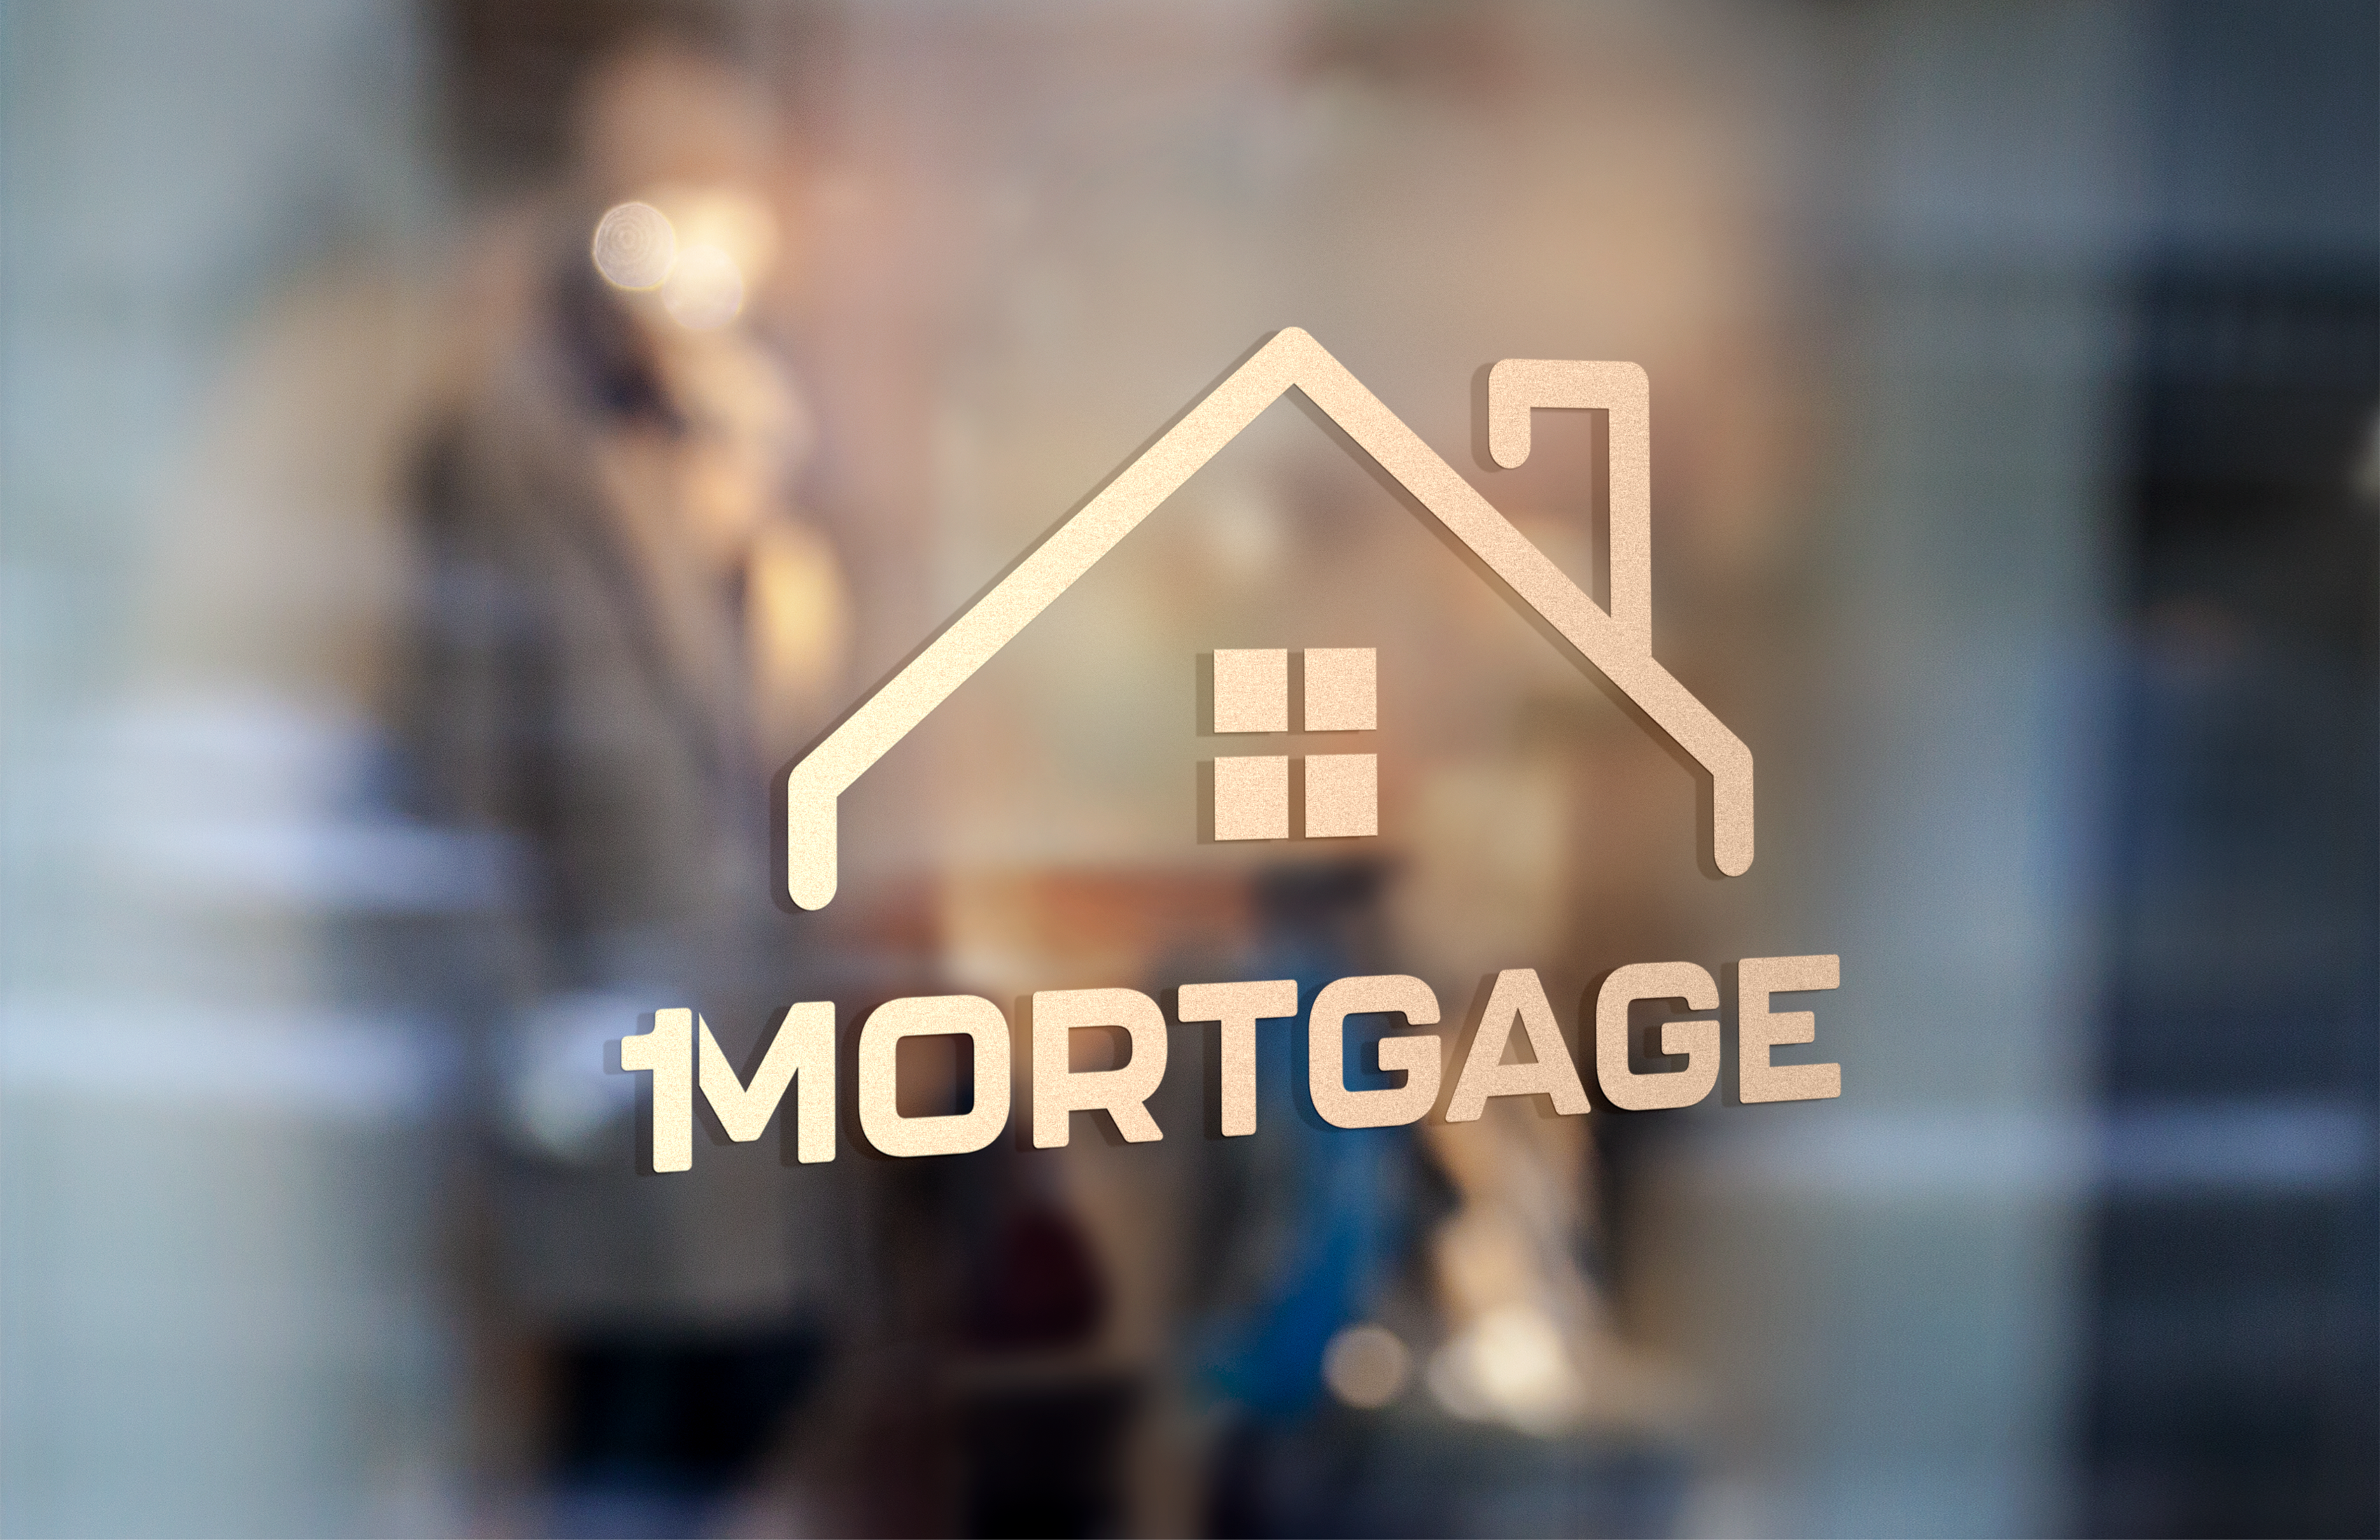 One Mortgage